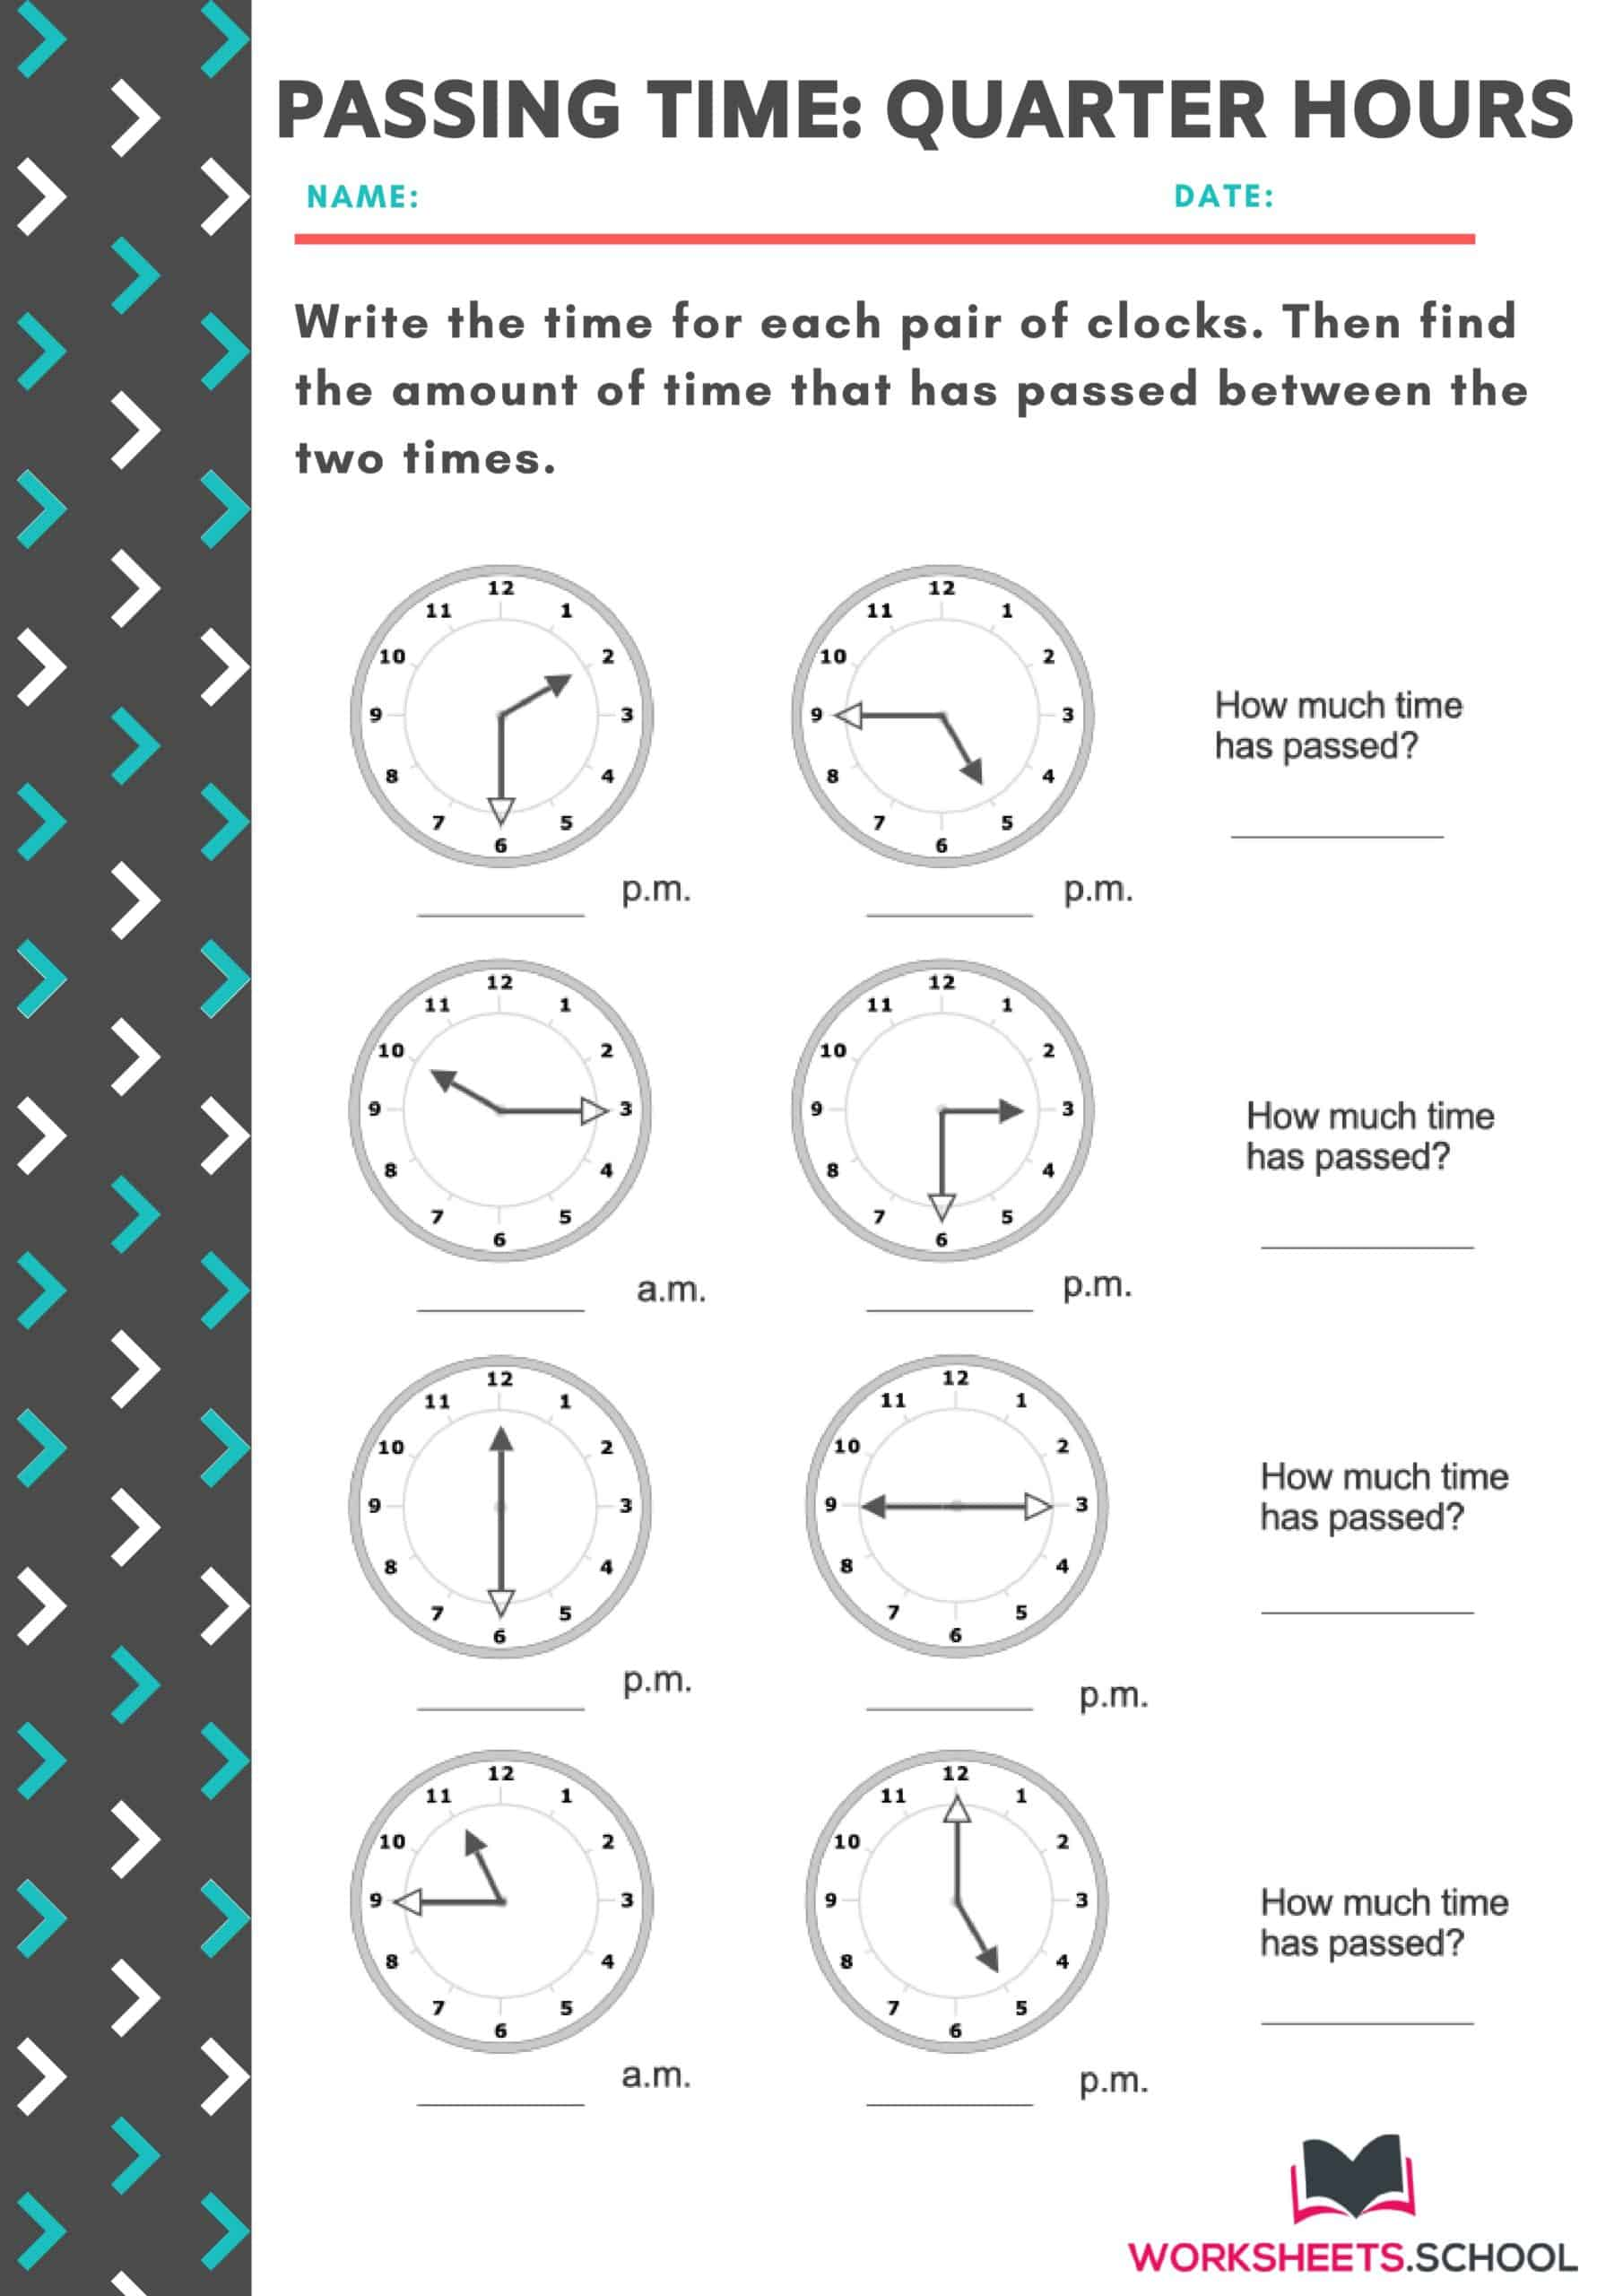 Passing Time Worksheet - Quarter Hours